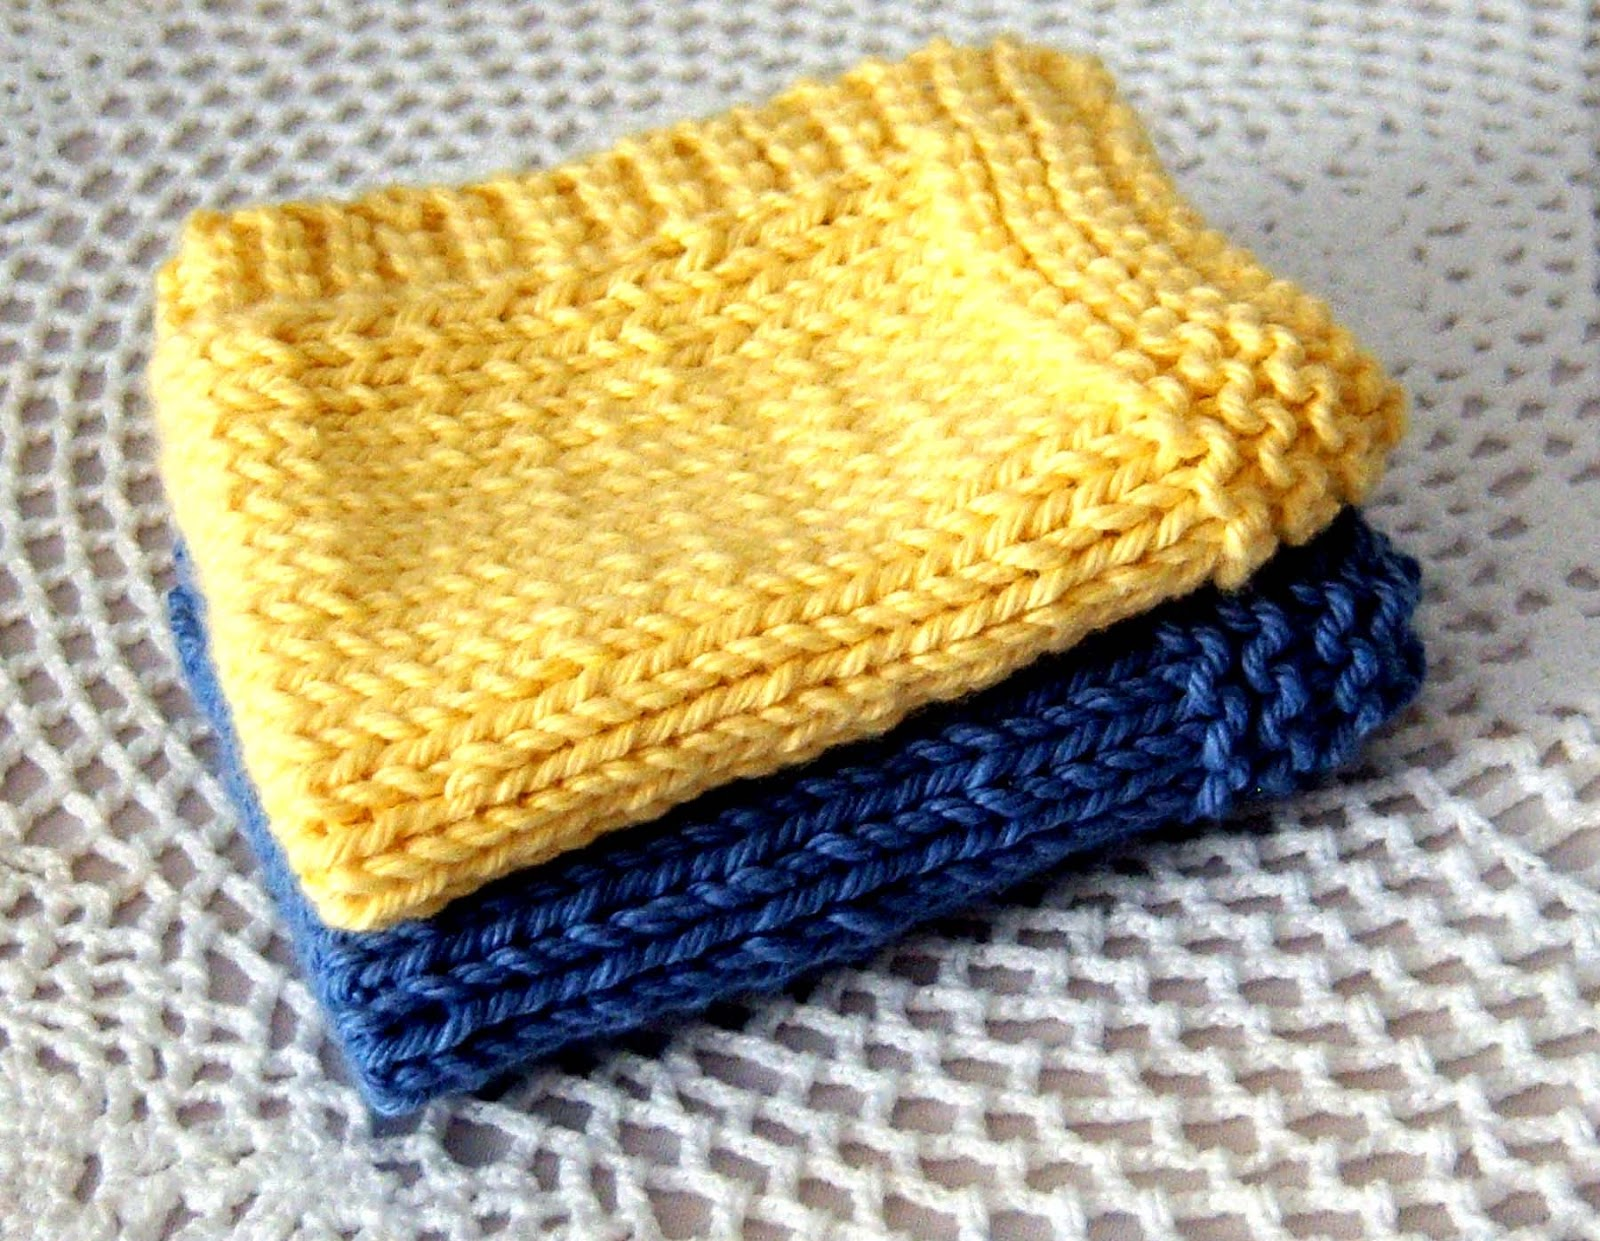 Knitting Dishcloths Easy : Shoregirl s creations knitted dishcloths